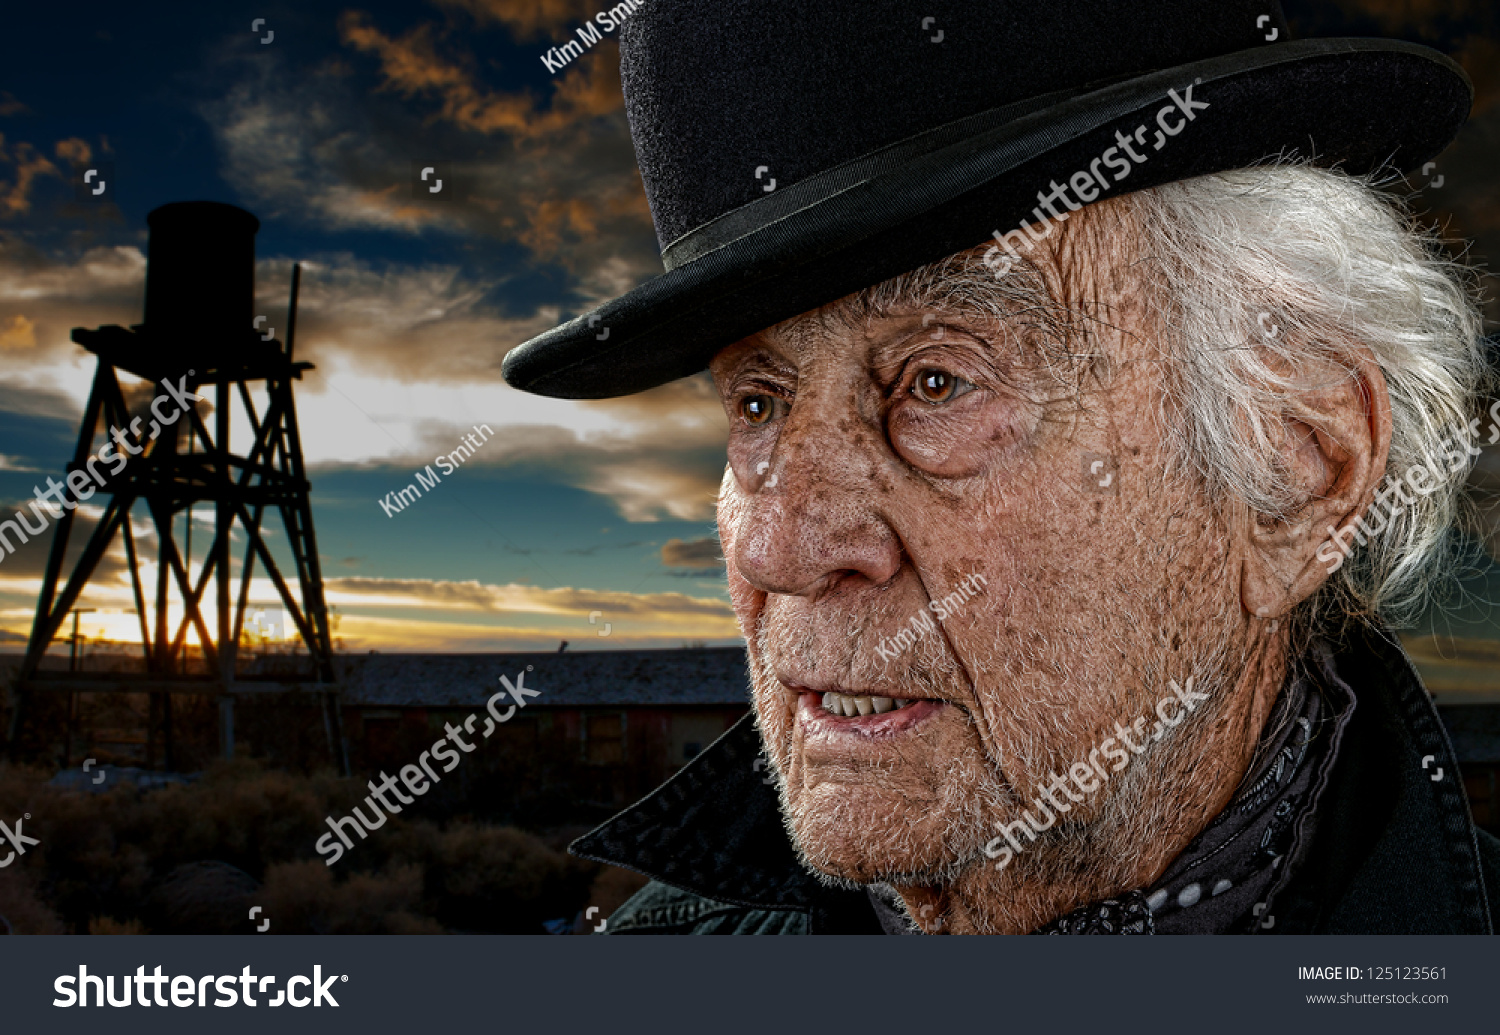 e7f24613f36 Old man wearing a black bowler hat with an old building and water tower  against a